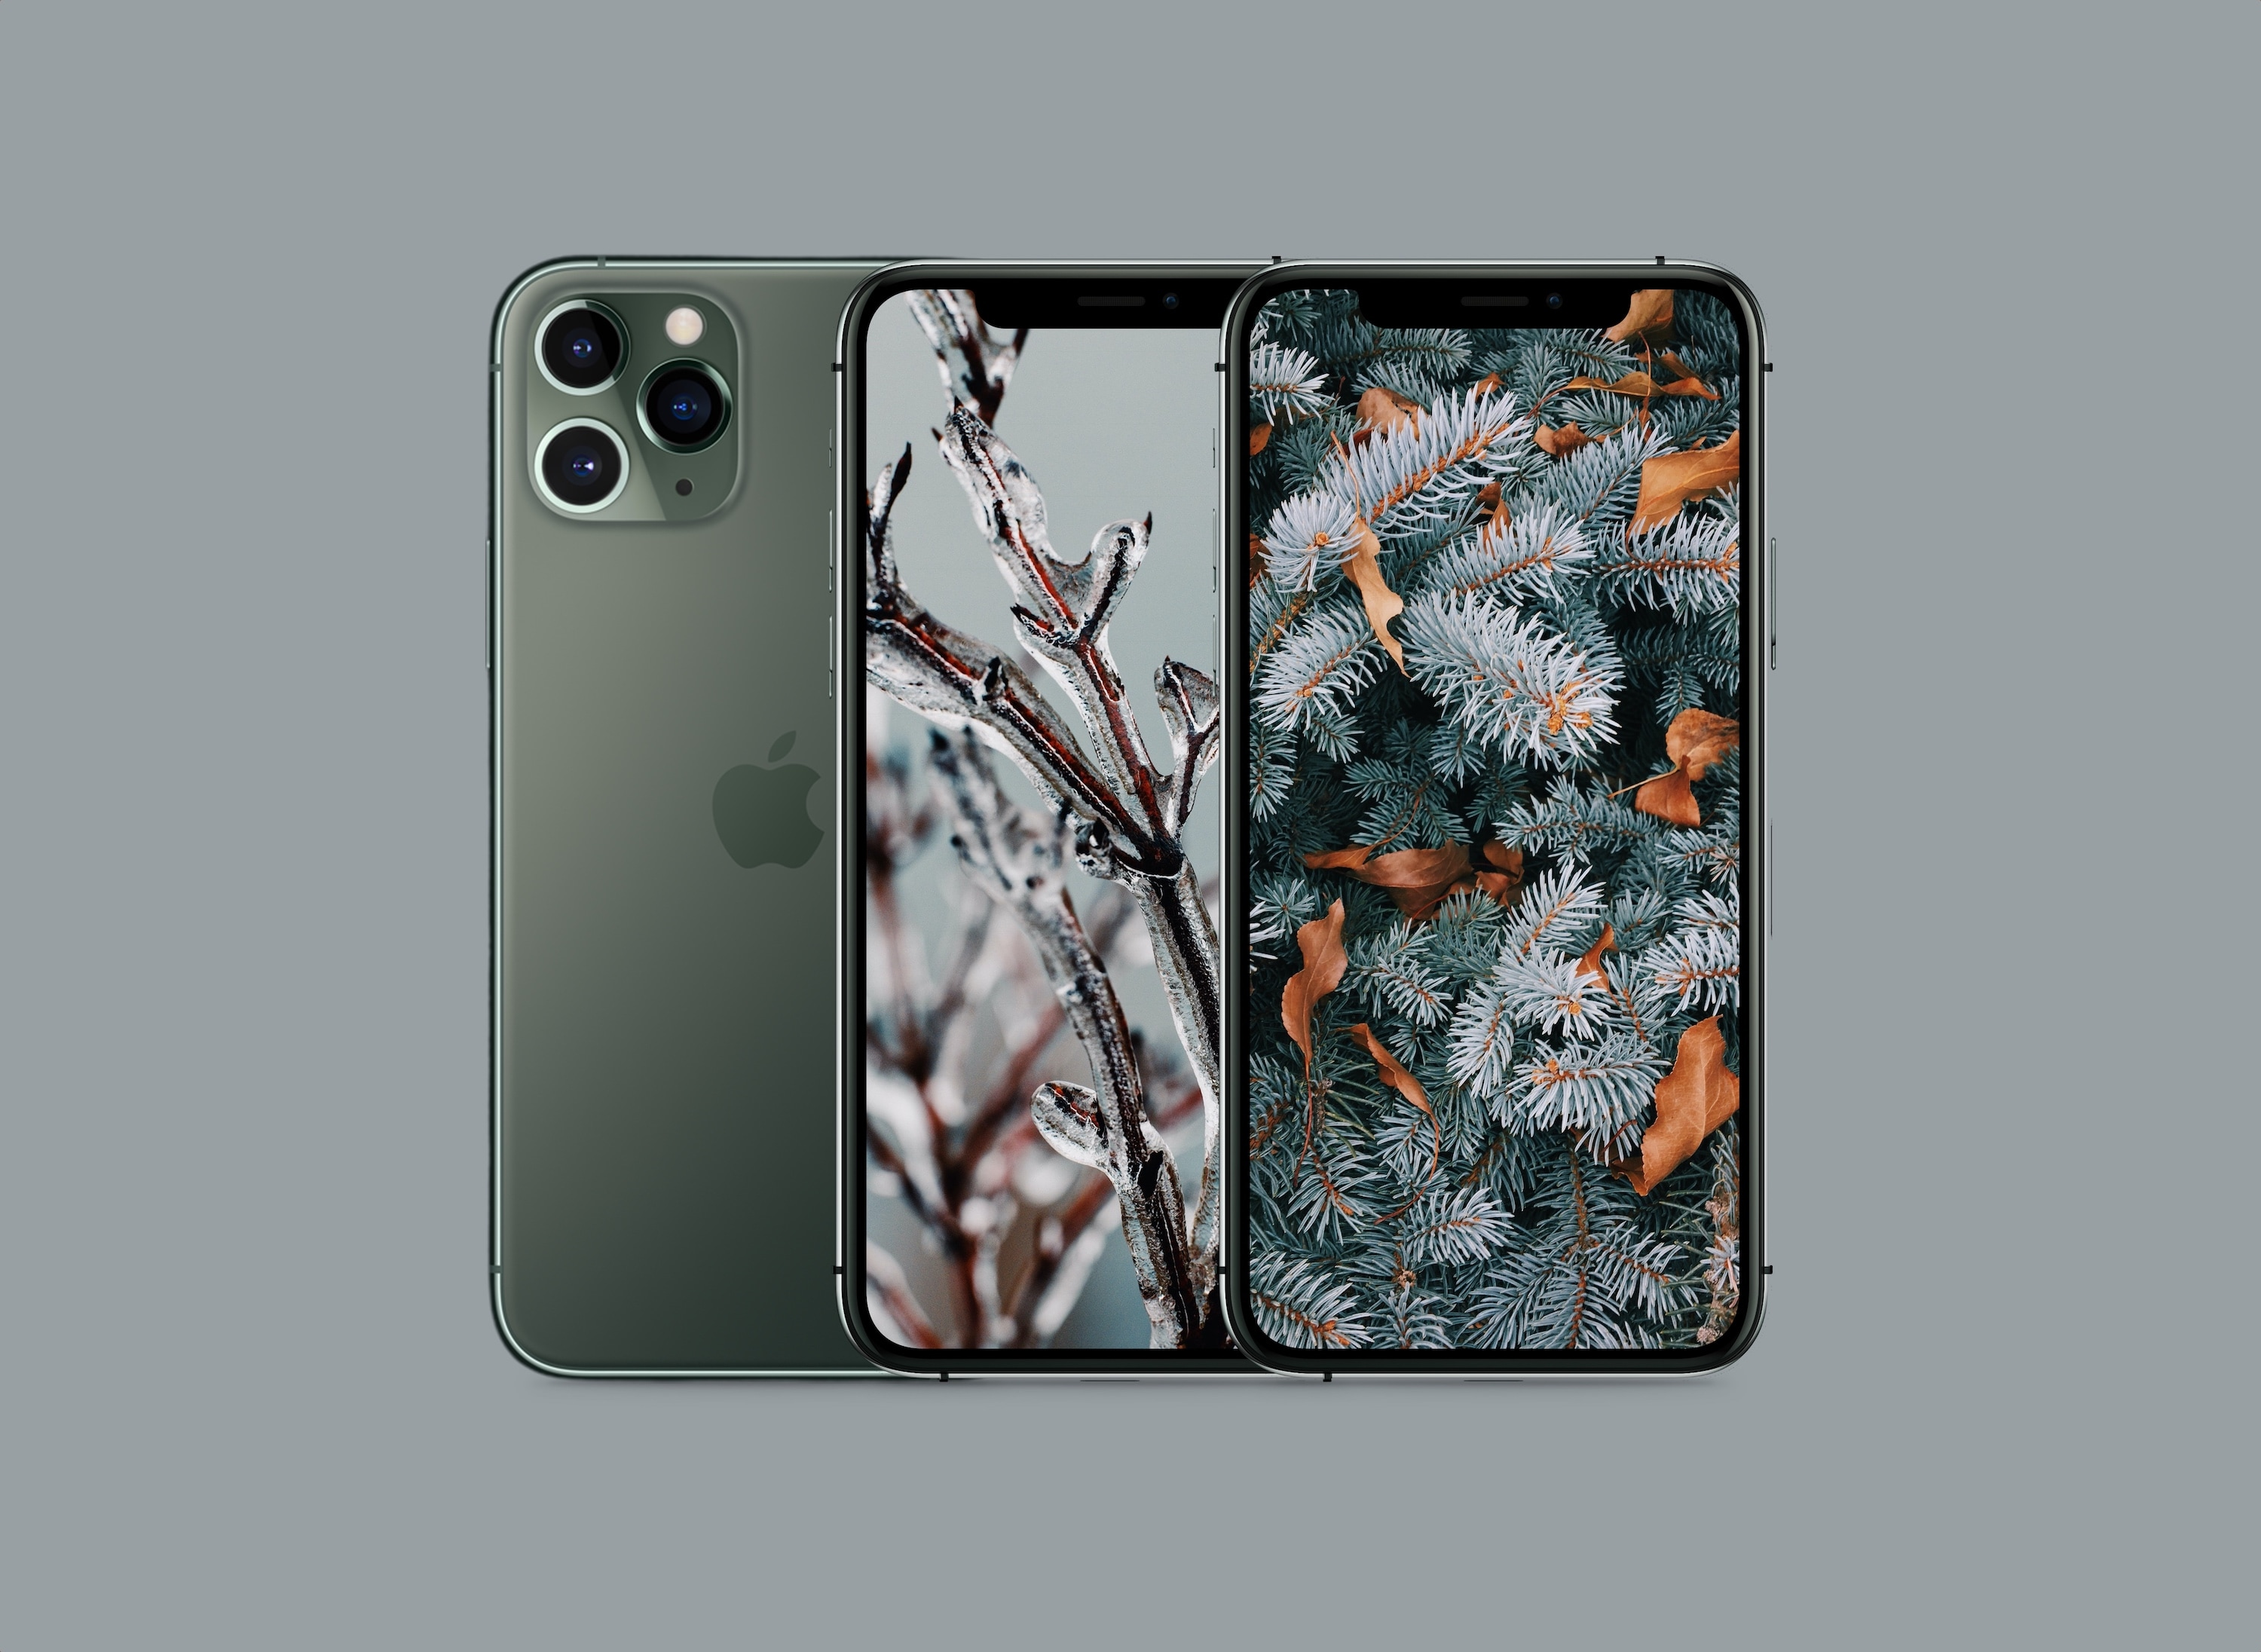 47 Iphone 11 Pro 4k 2020 Wallpapers On Wallpapersafari